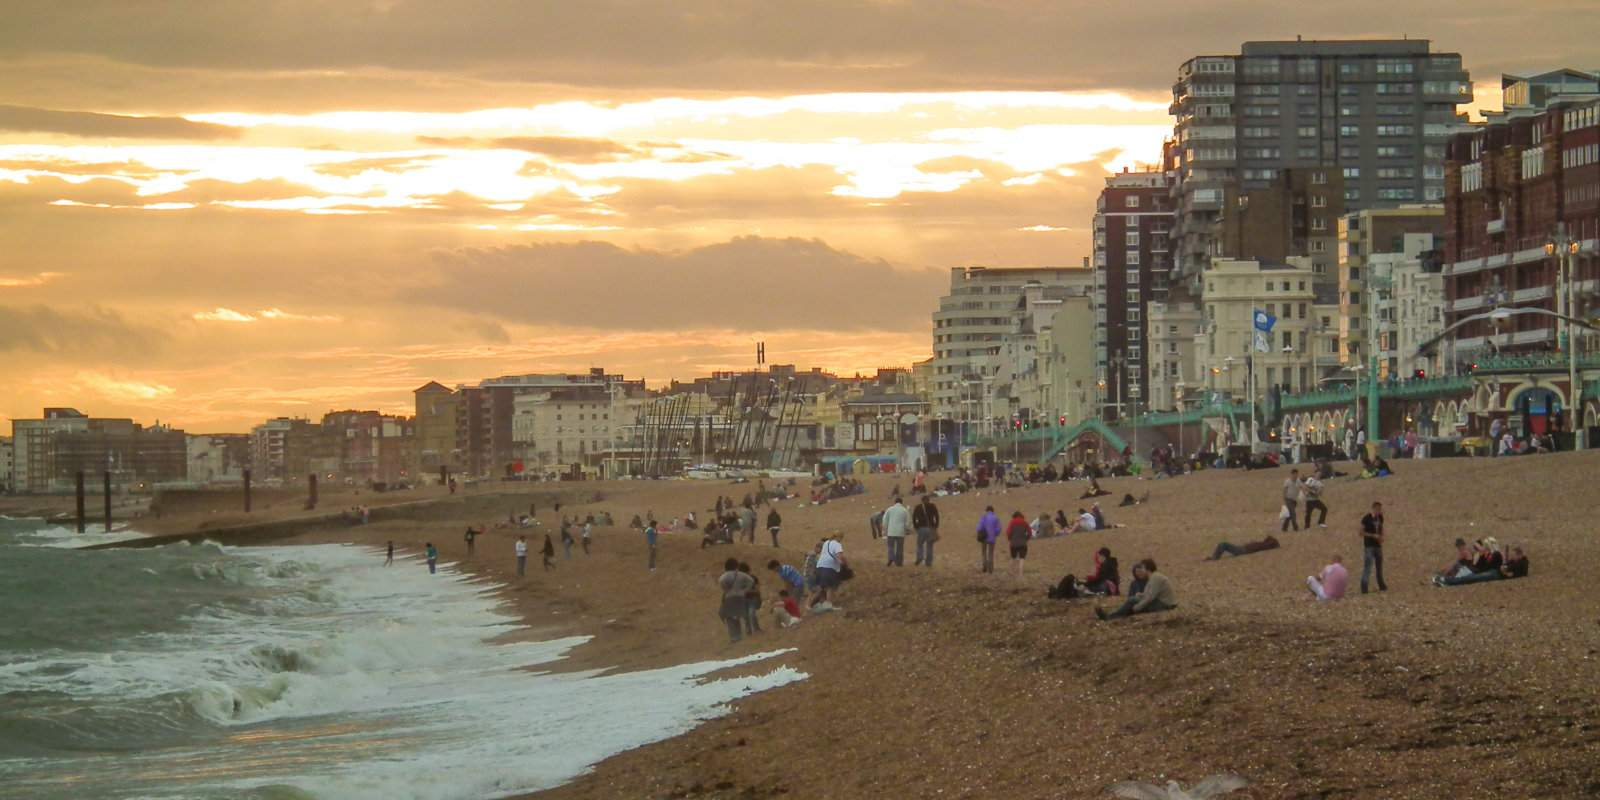 Brighton is one of the most gay friendly cities in Europe